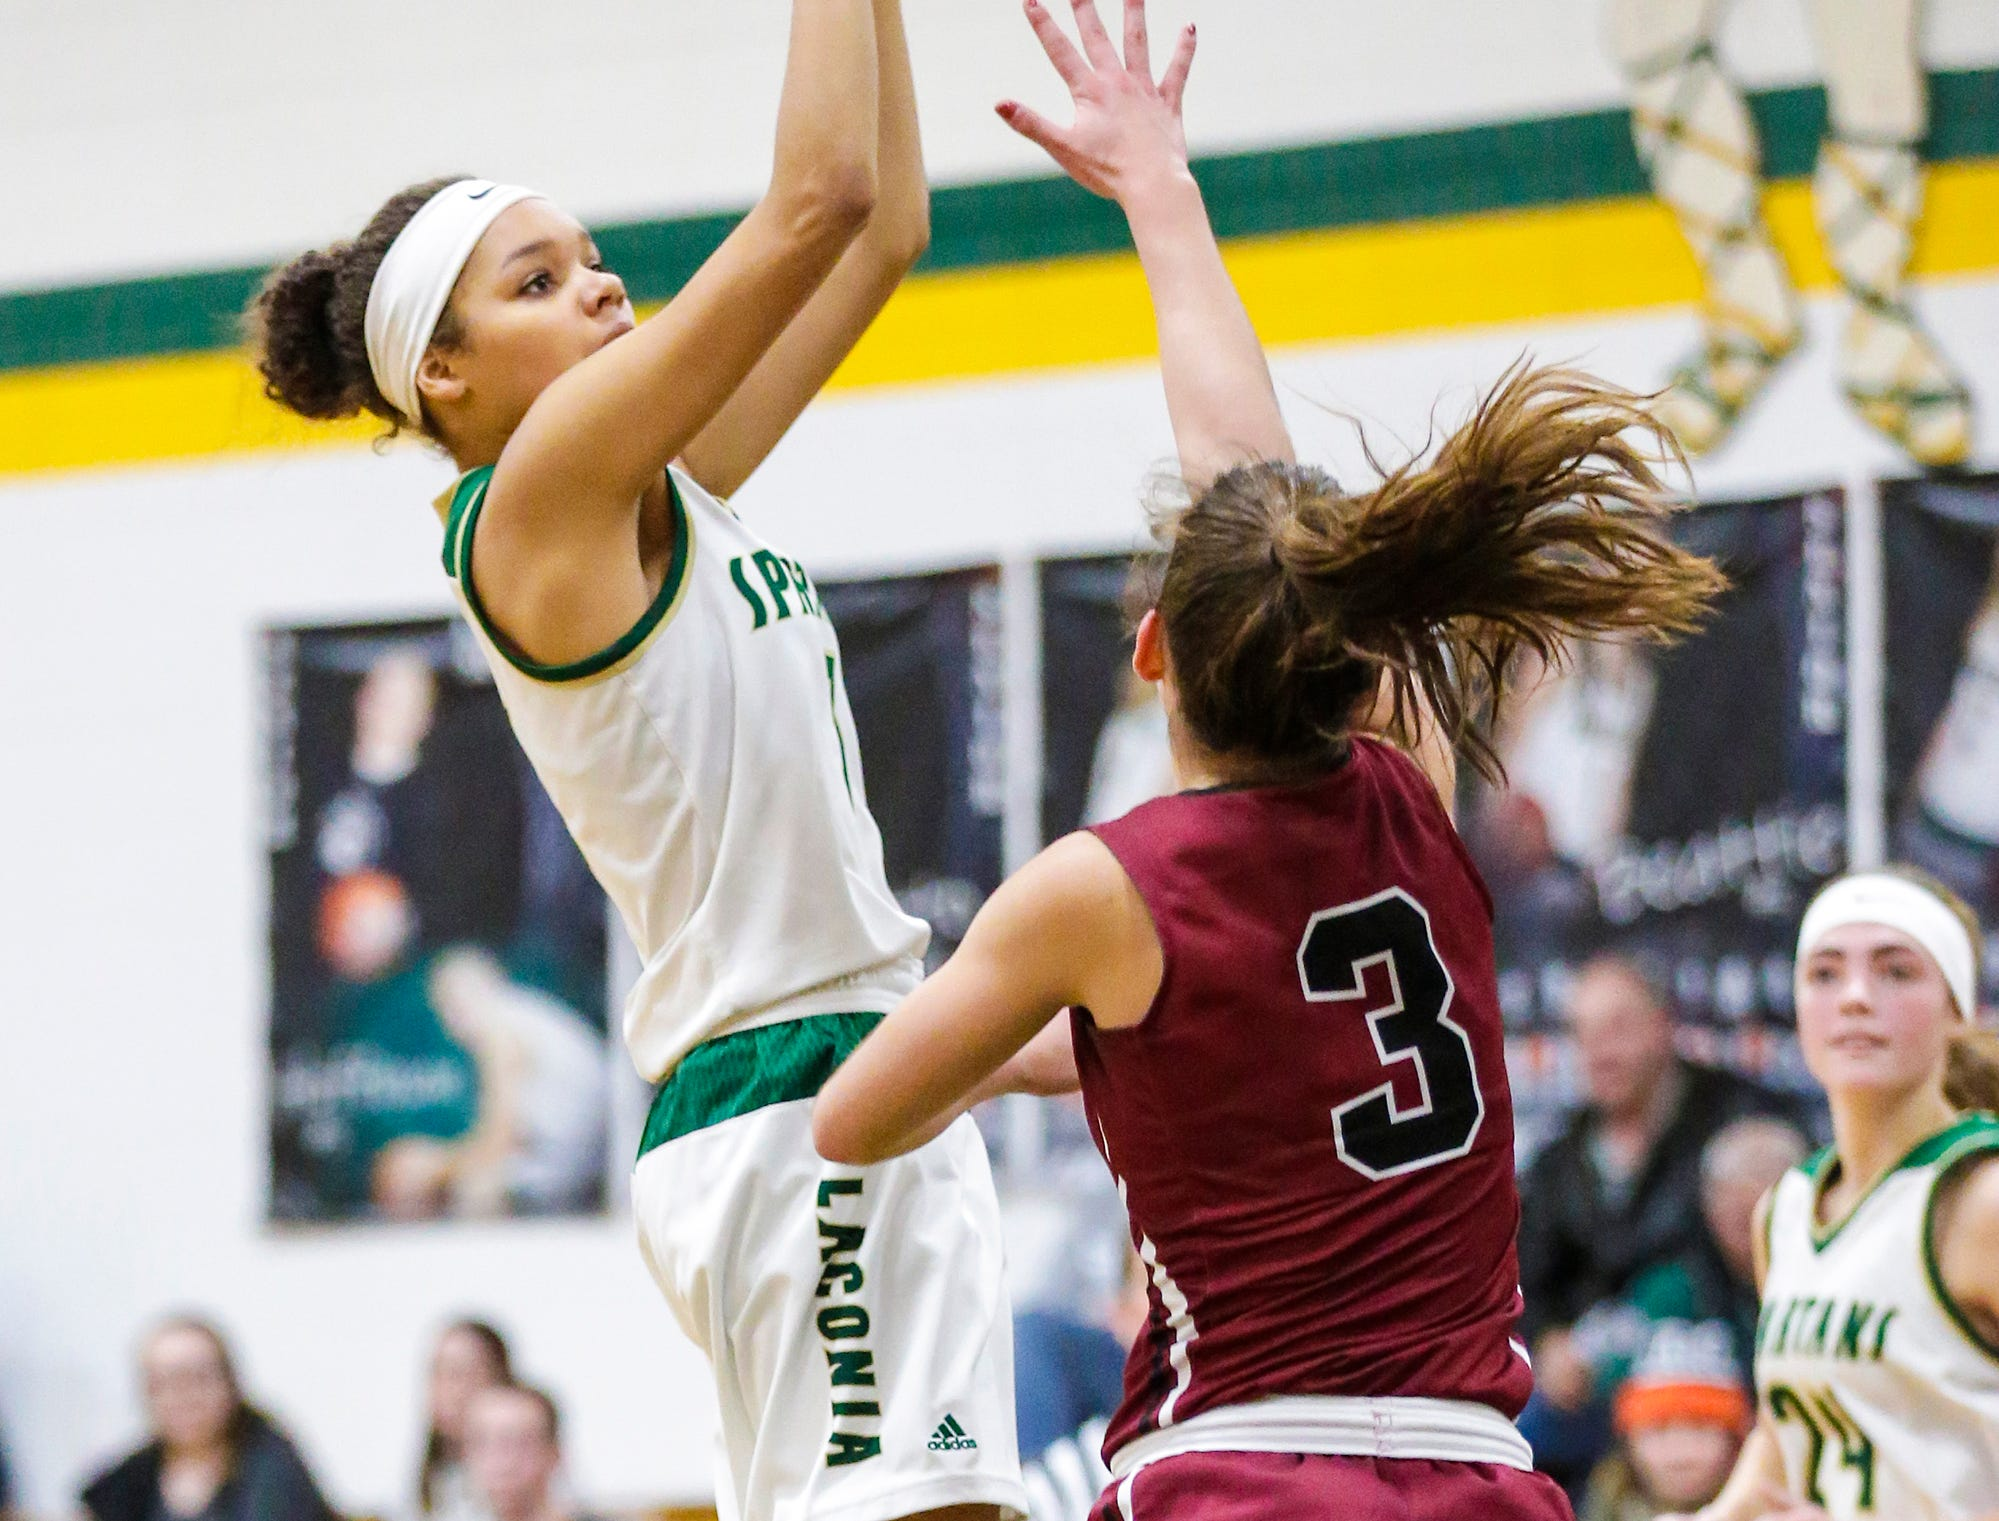 Laconia High School girls basketball's Kiarra Otto takes a shot over Mayville High School's Amber Schraufnagel during their game Friday, November 30, 2018 in Rosendale. Doug Raflik/USA TODAY NETWORK-Wisconsin